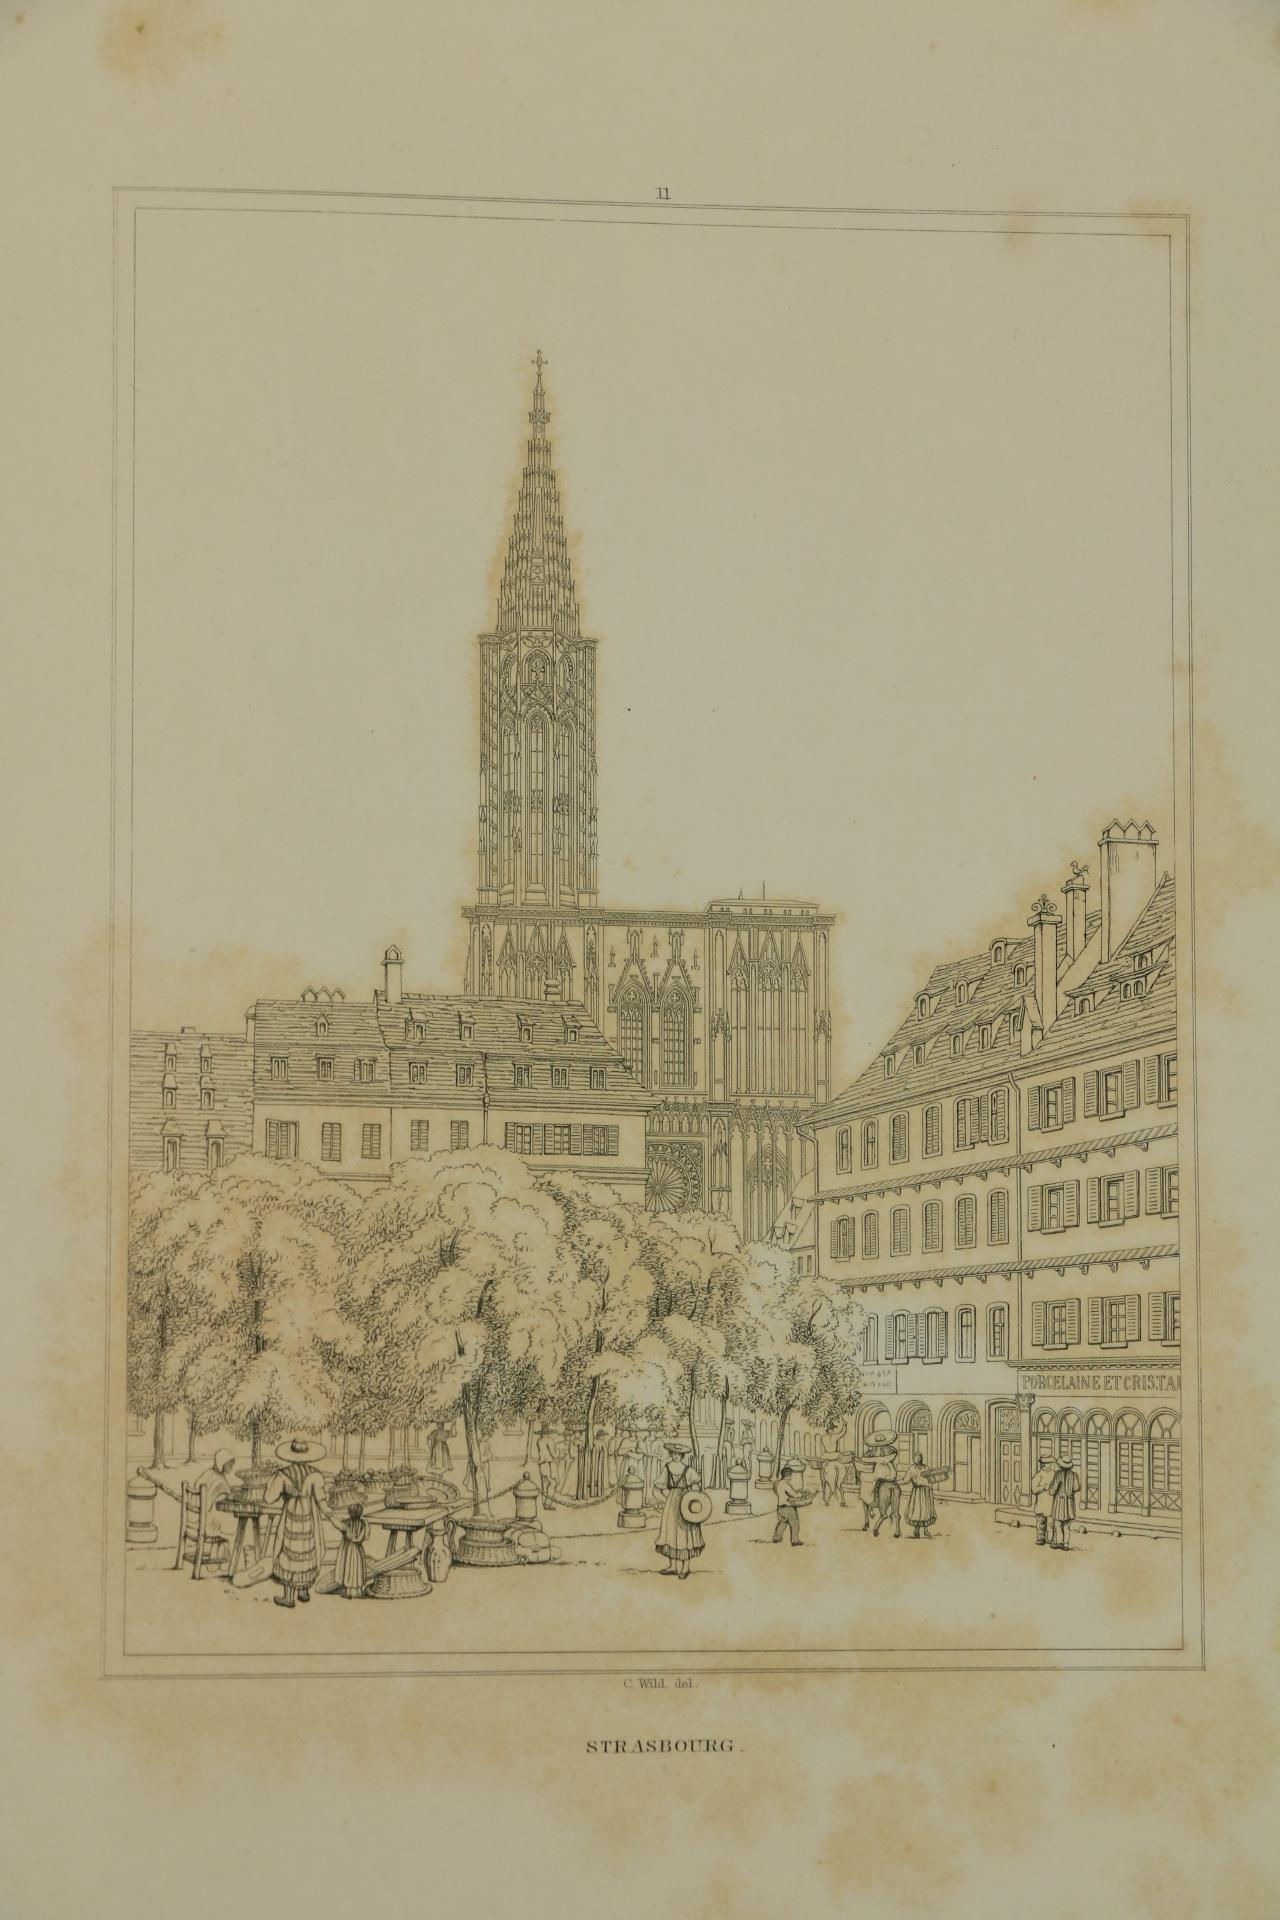 Wild (Charles)ÿSelect Examples of Architectural Grandeur in Belgium, Germany and France, Lg. folio - Image 3 of 6